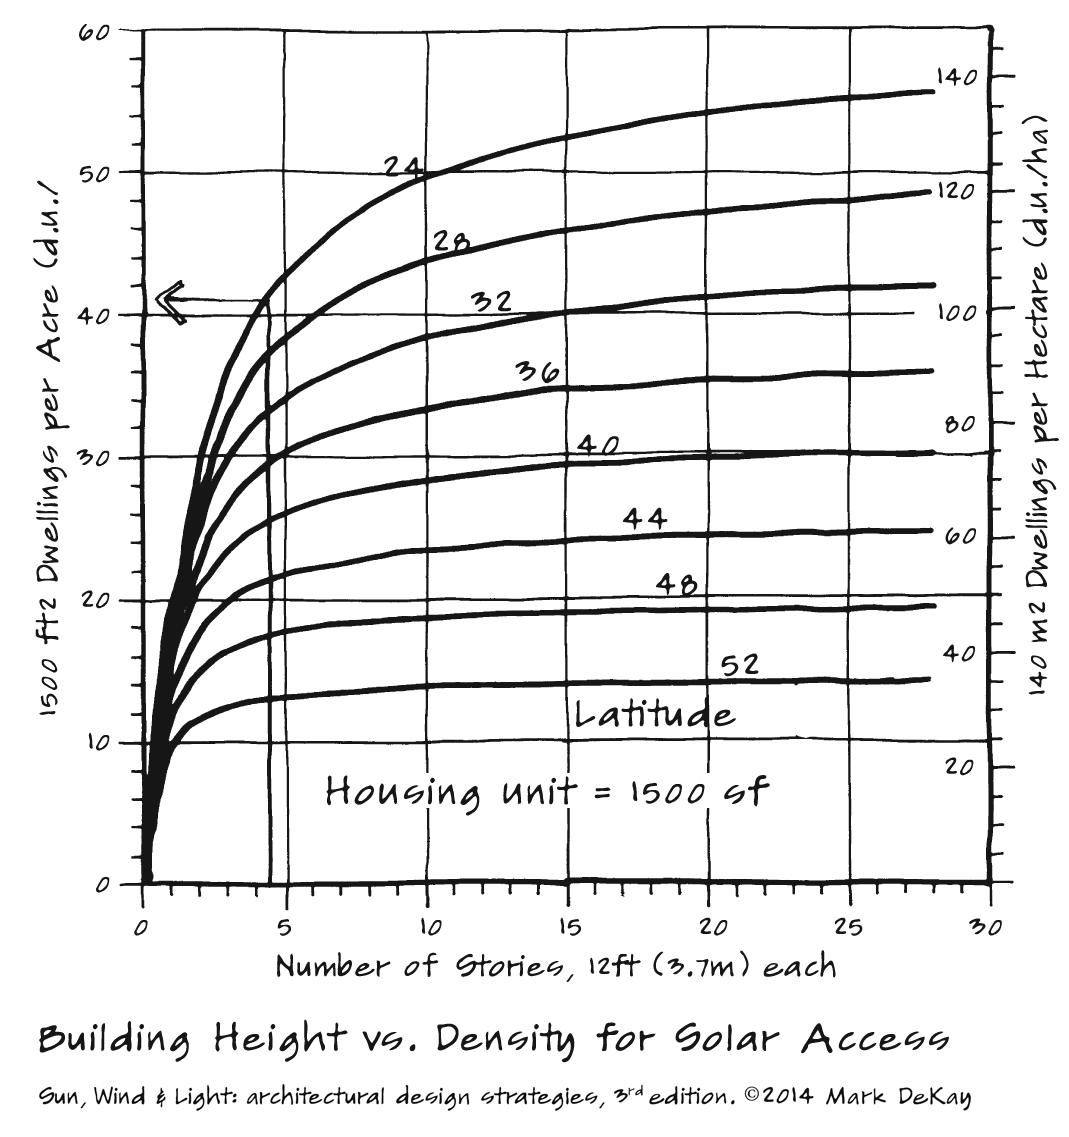 p136 Building Height vs. Density